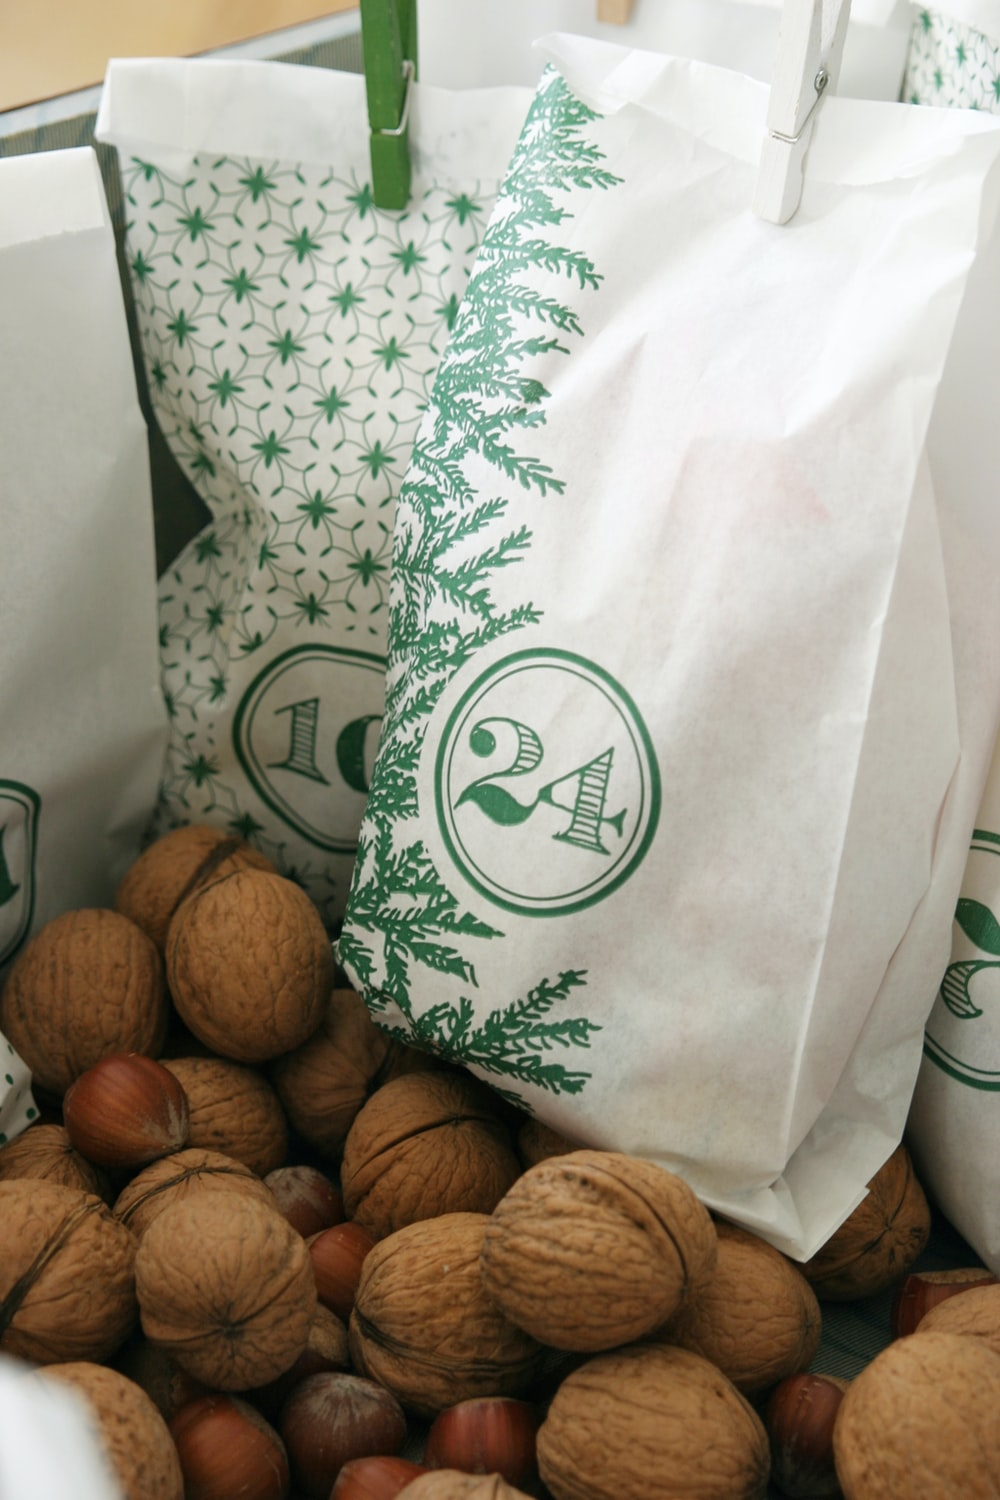 brown round fruits on white plastic bag